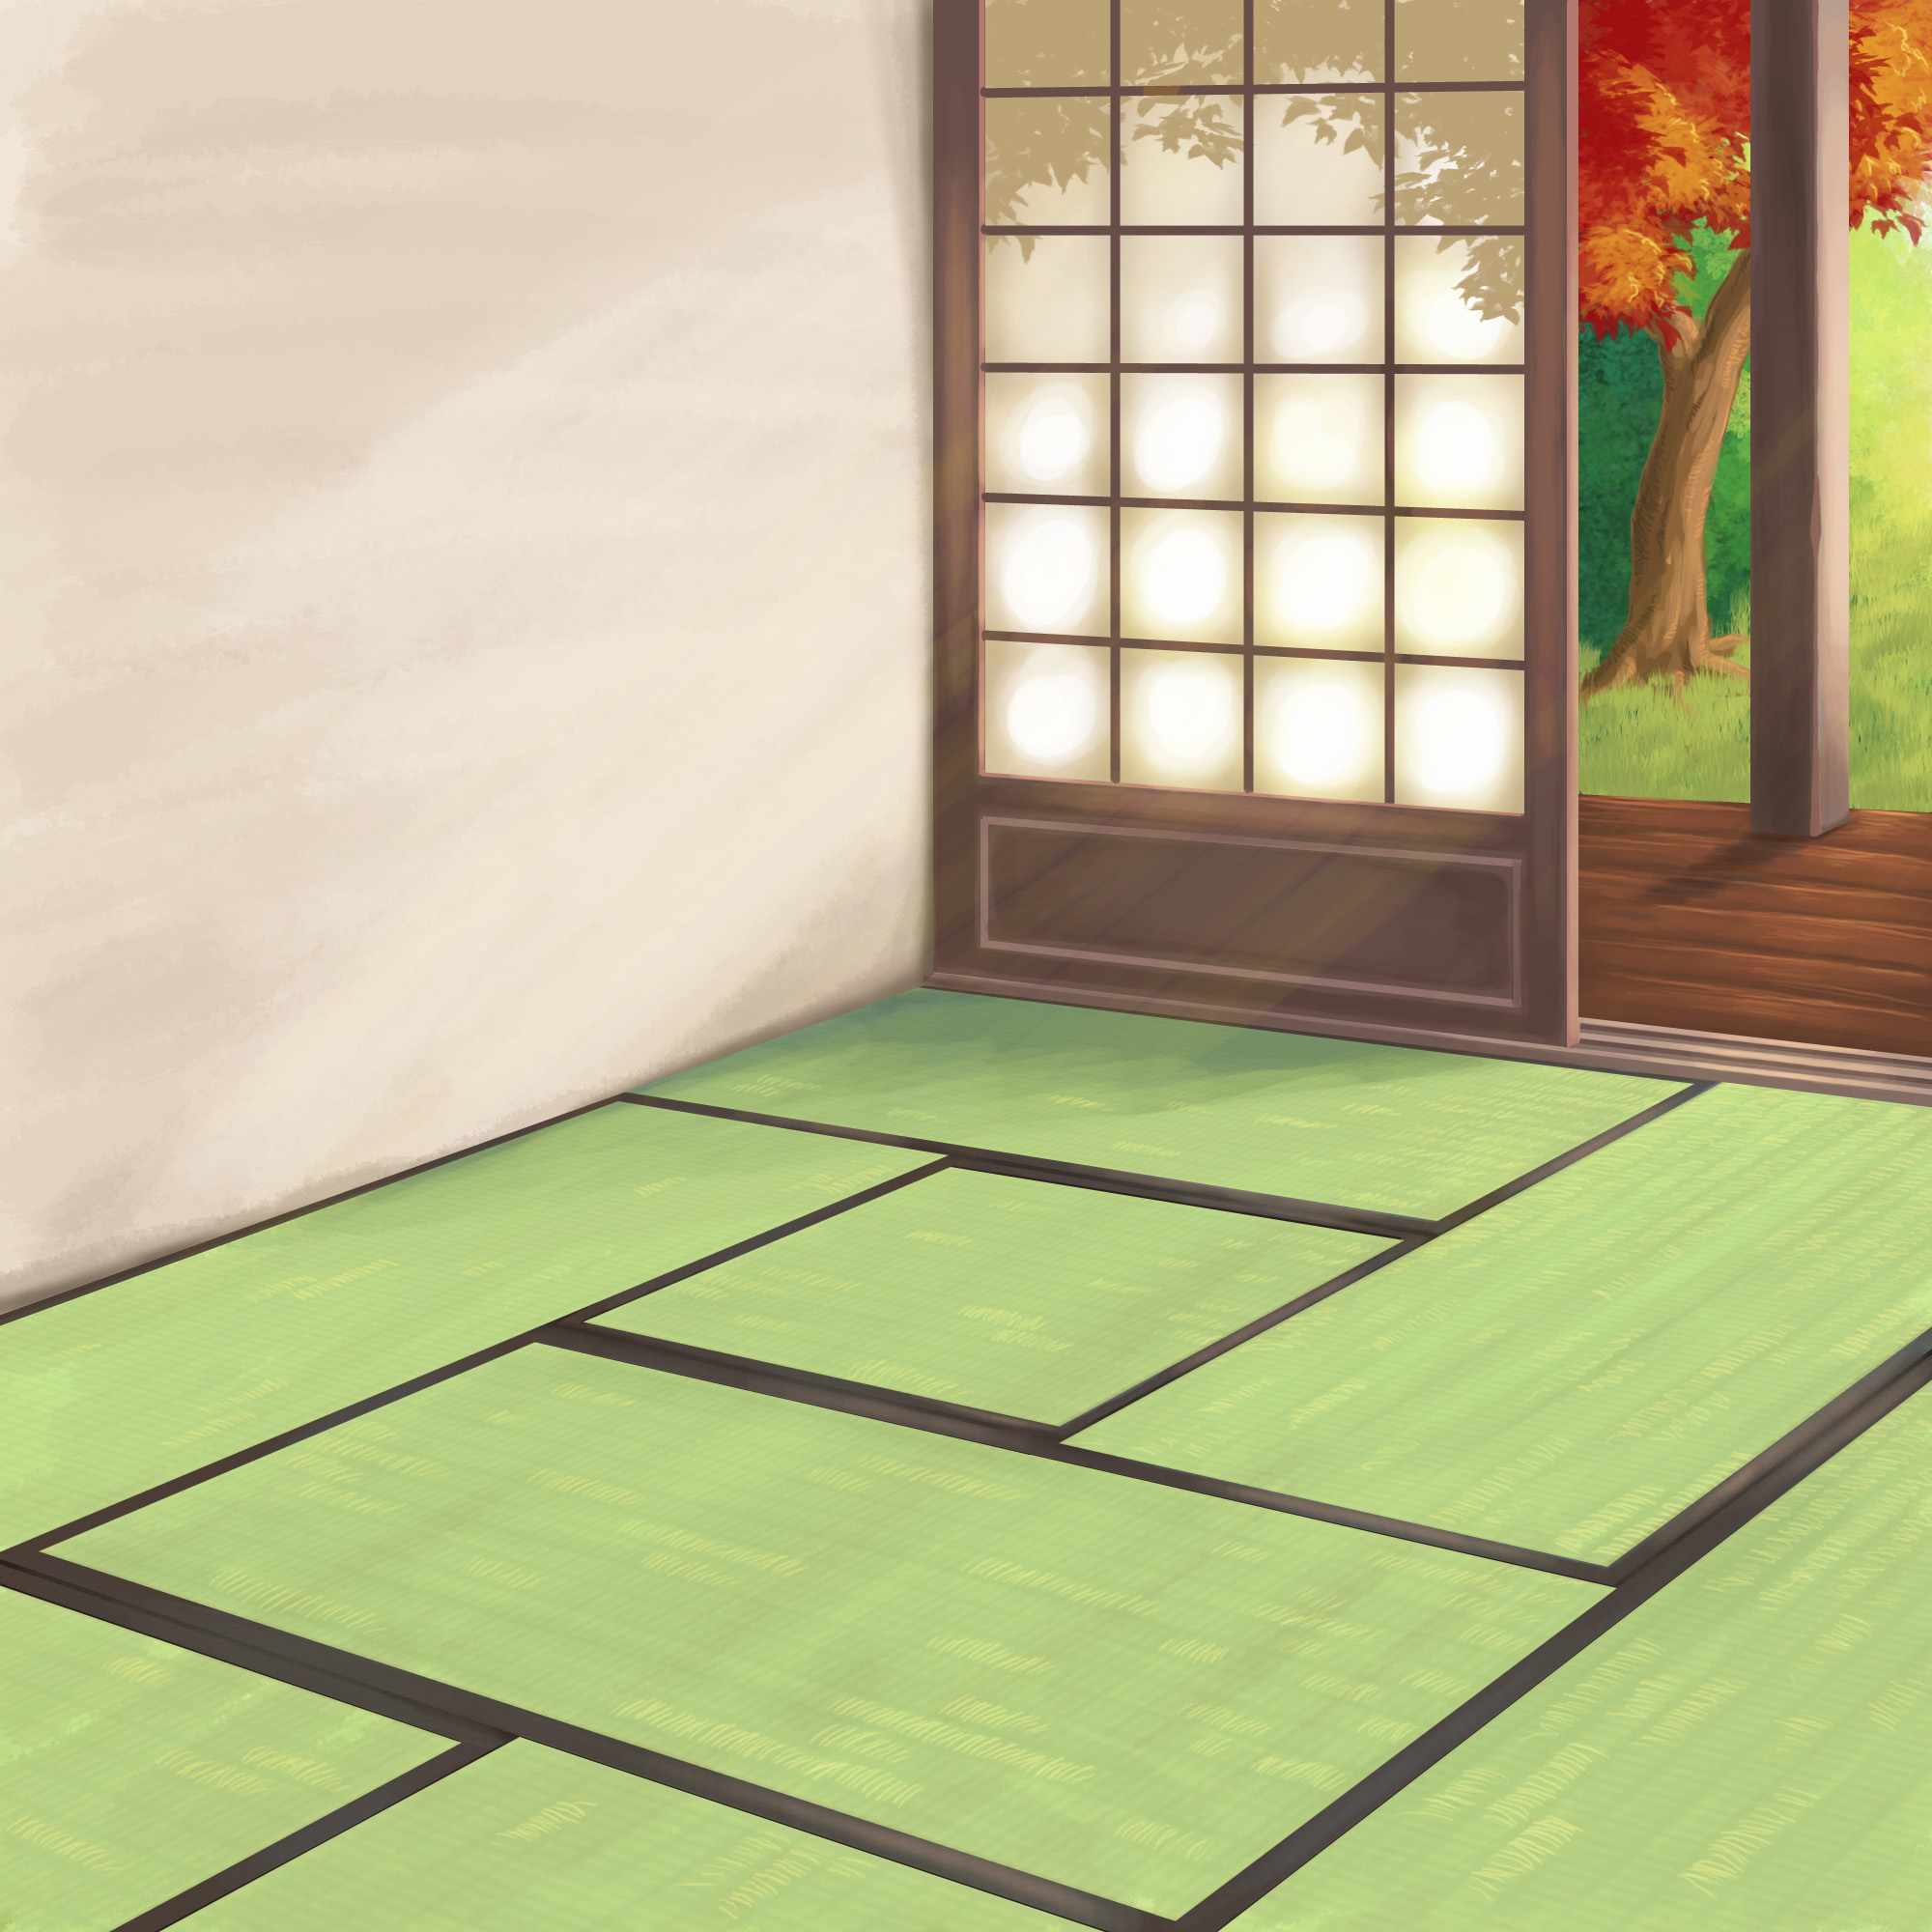 Tatami room by gamera1985 on deviantart - Tatami japones ...